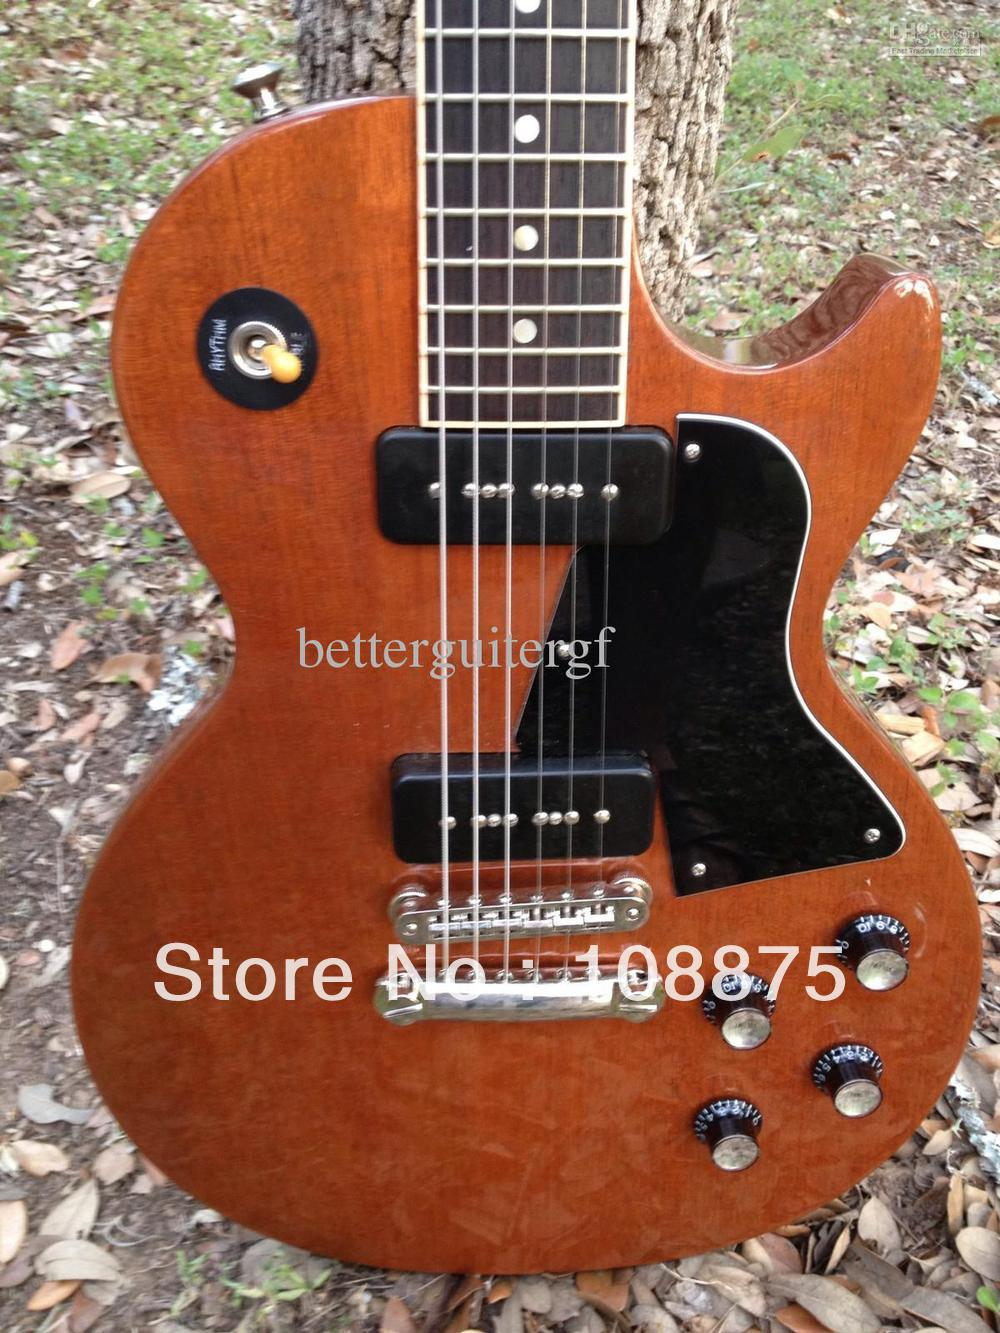 -Top Musical instruments New Arrival Special Rosewood Neck Lollar Pickups Tonepros Hardware100% Excellent Quality100% Excellent(China (Mainland))